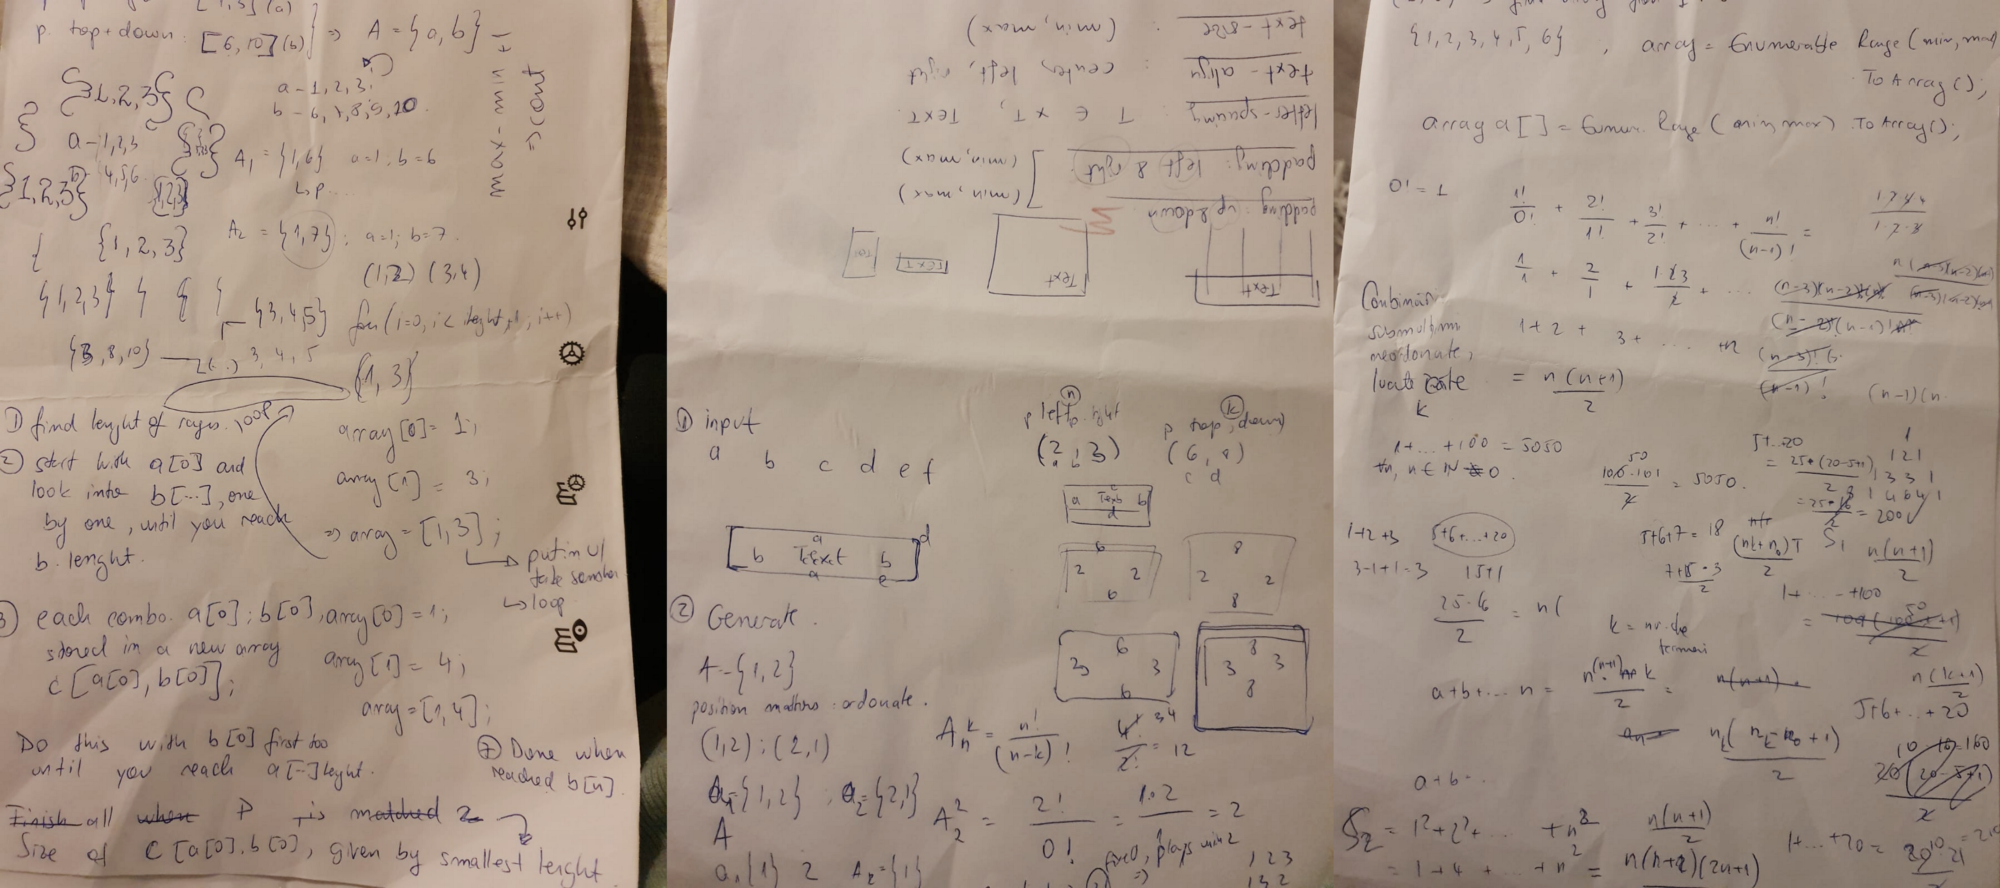 Three pieces of paper filled with notes and digits forming padding combinations